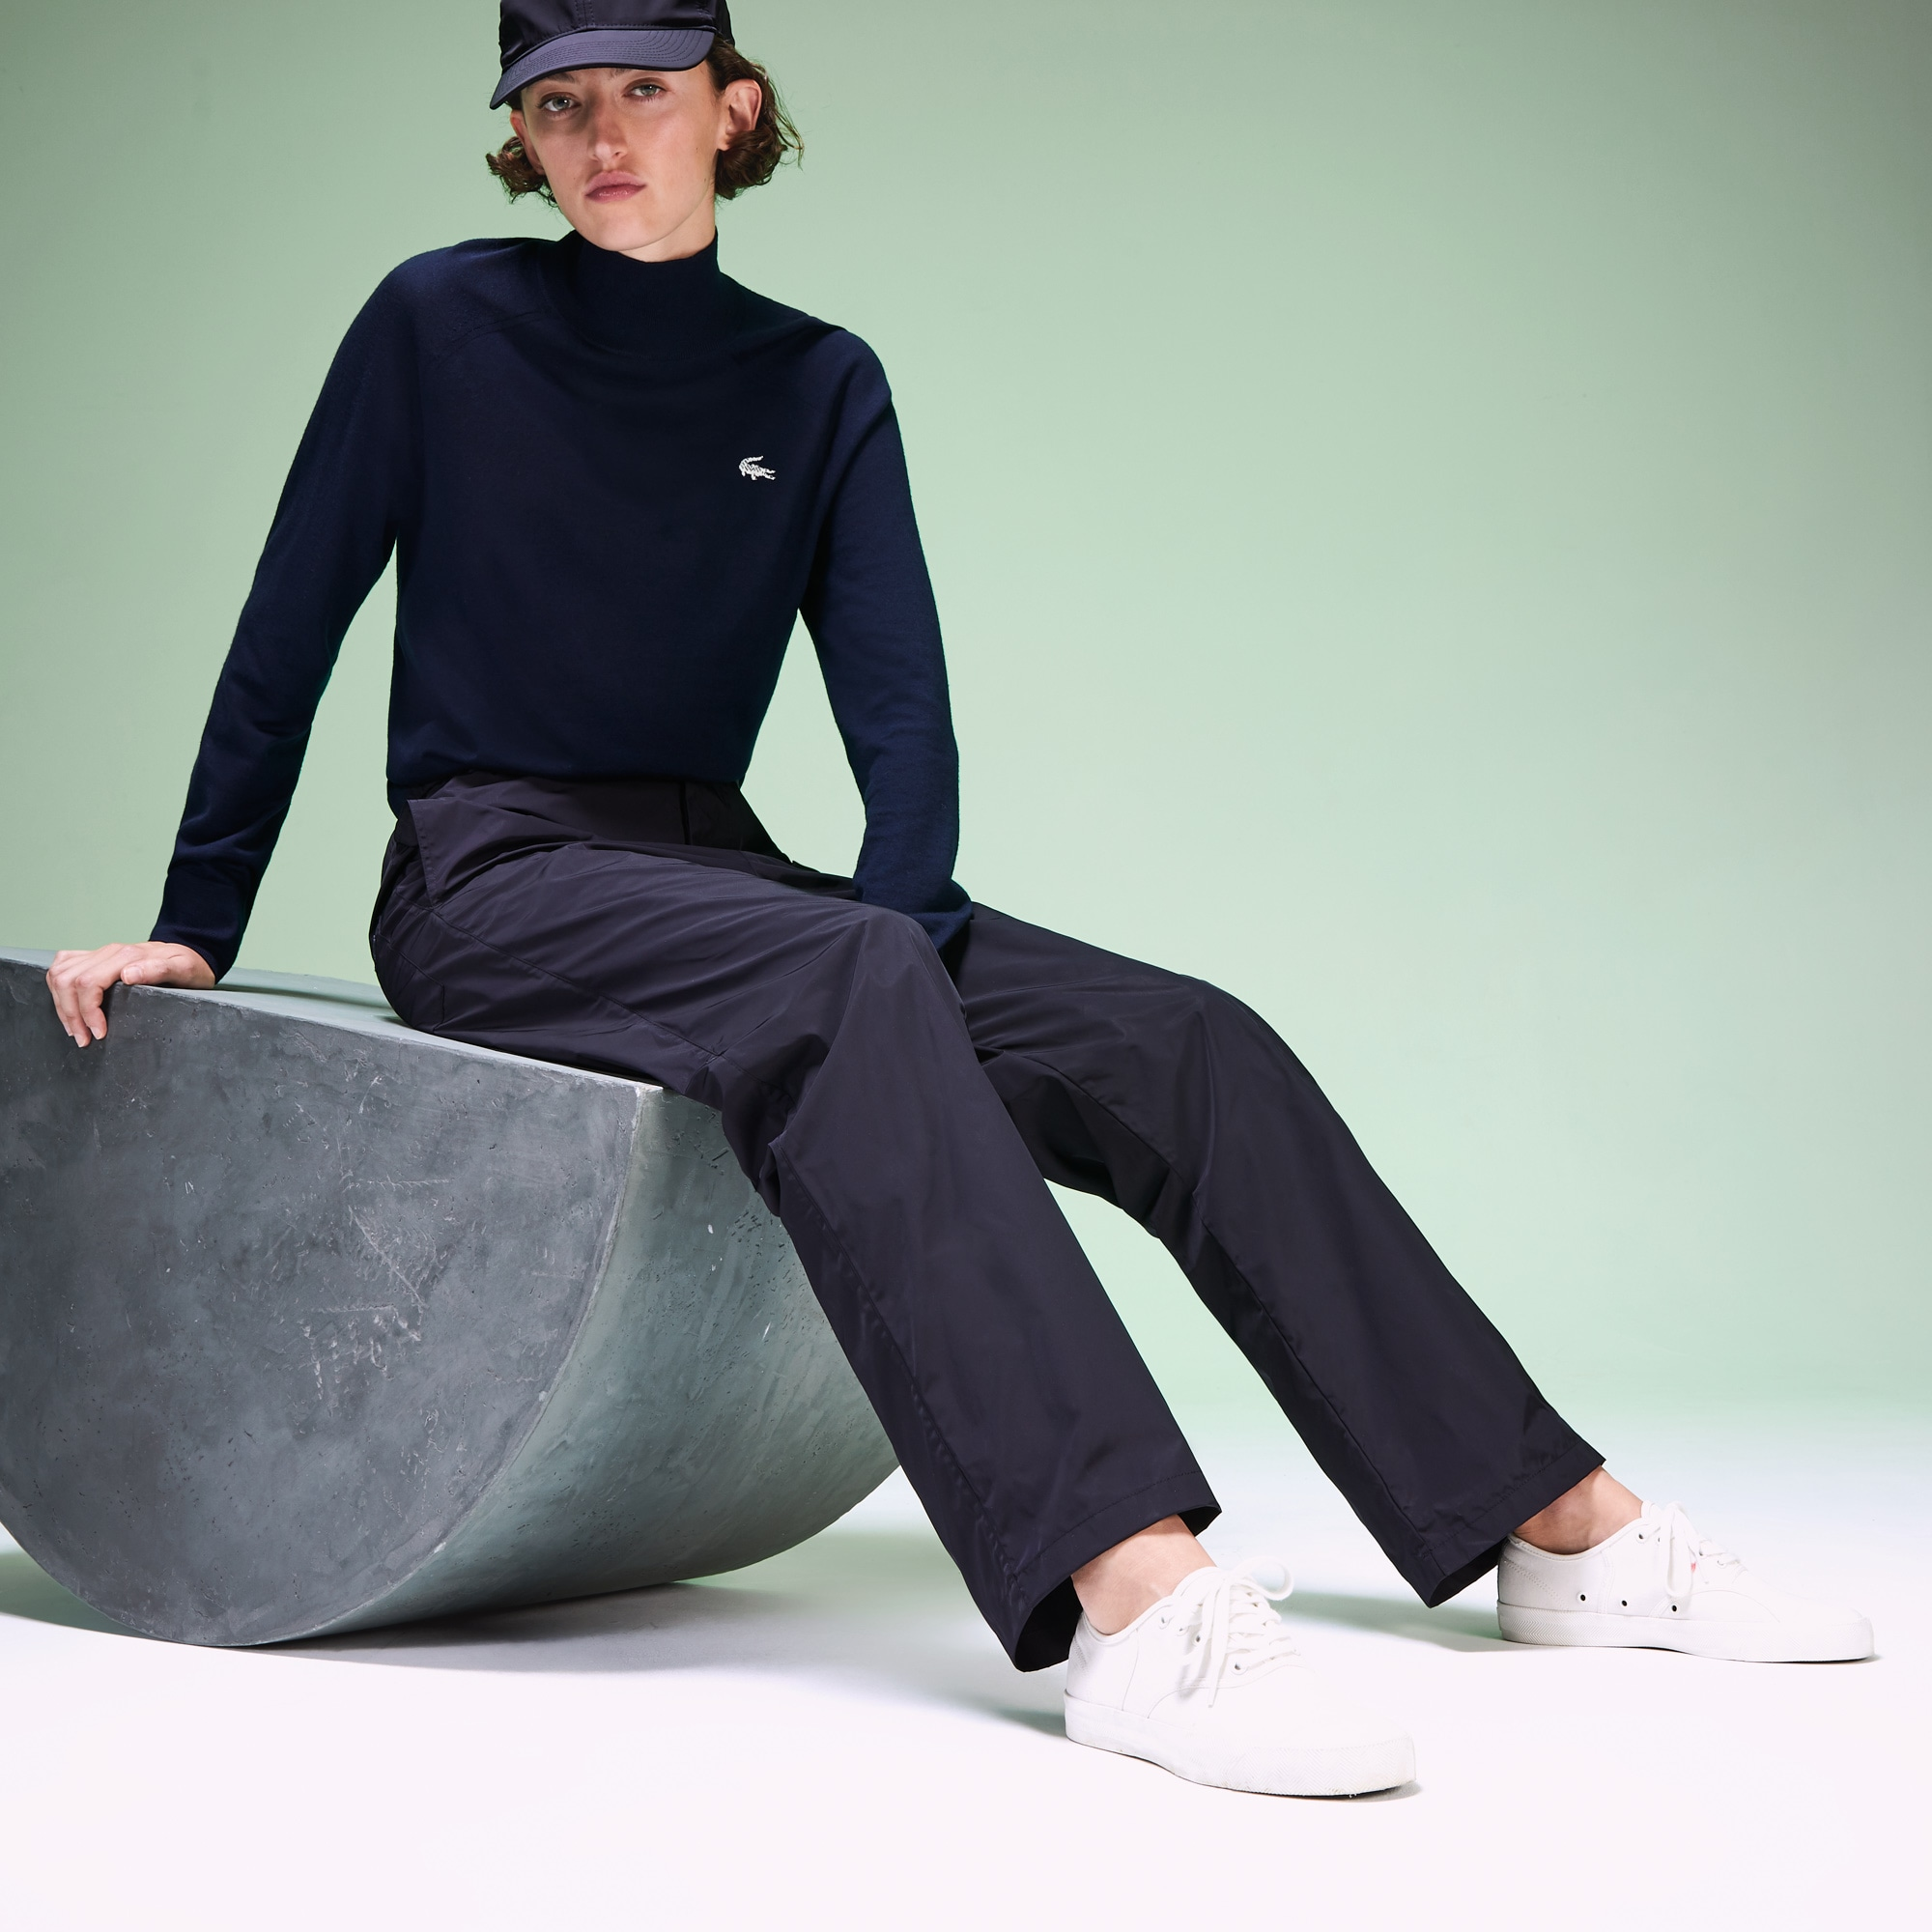 Unisex Fashion Show Turtleneck Wool Sweater